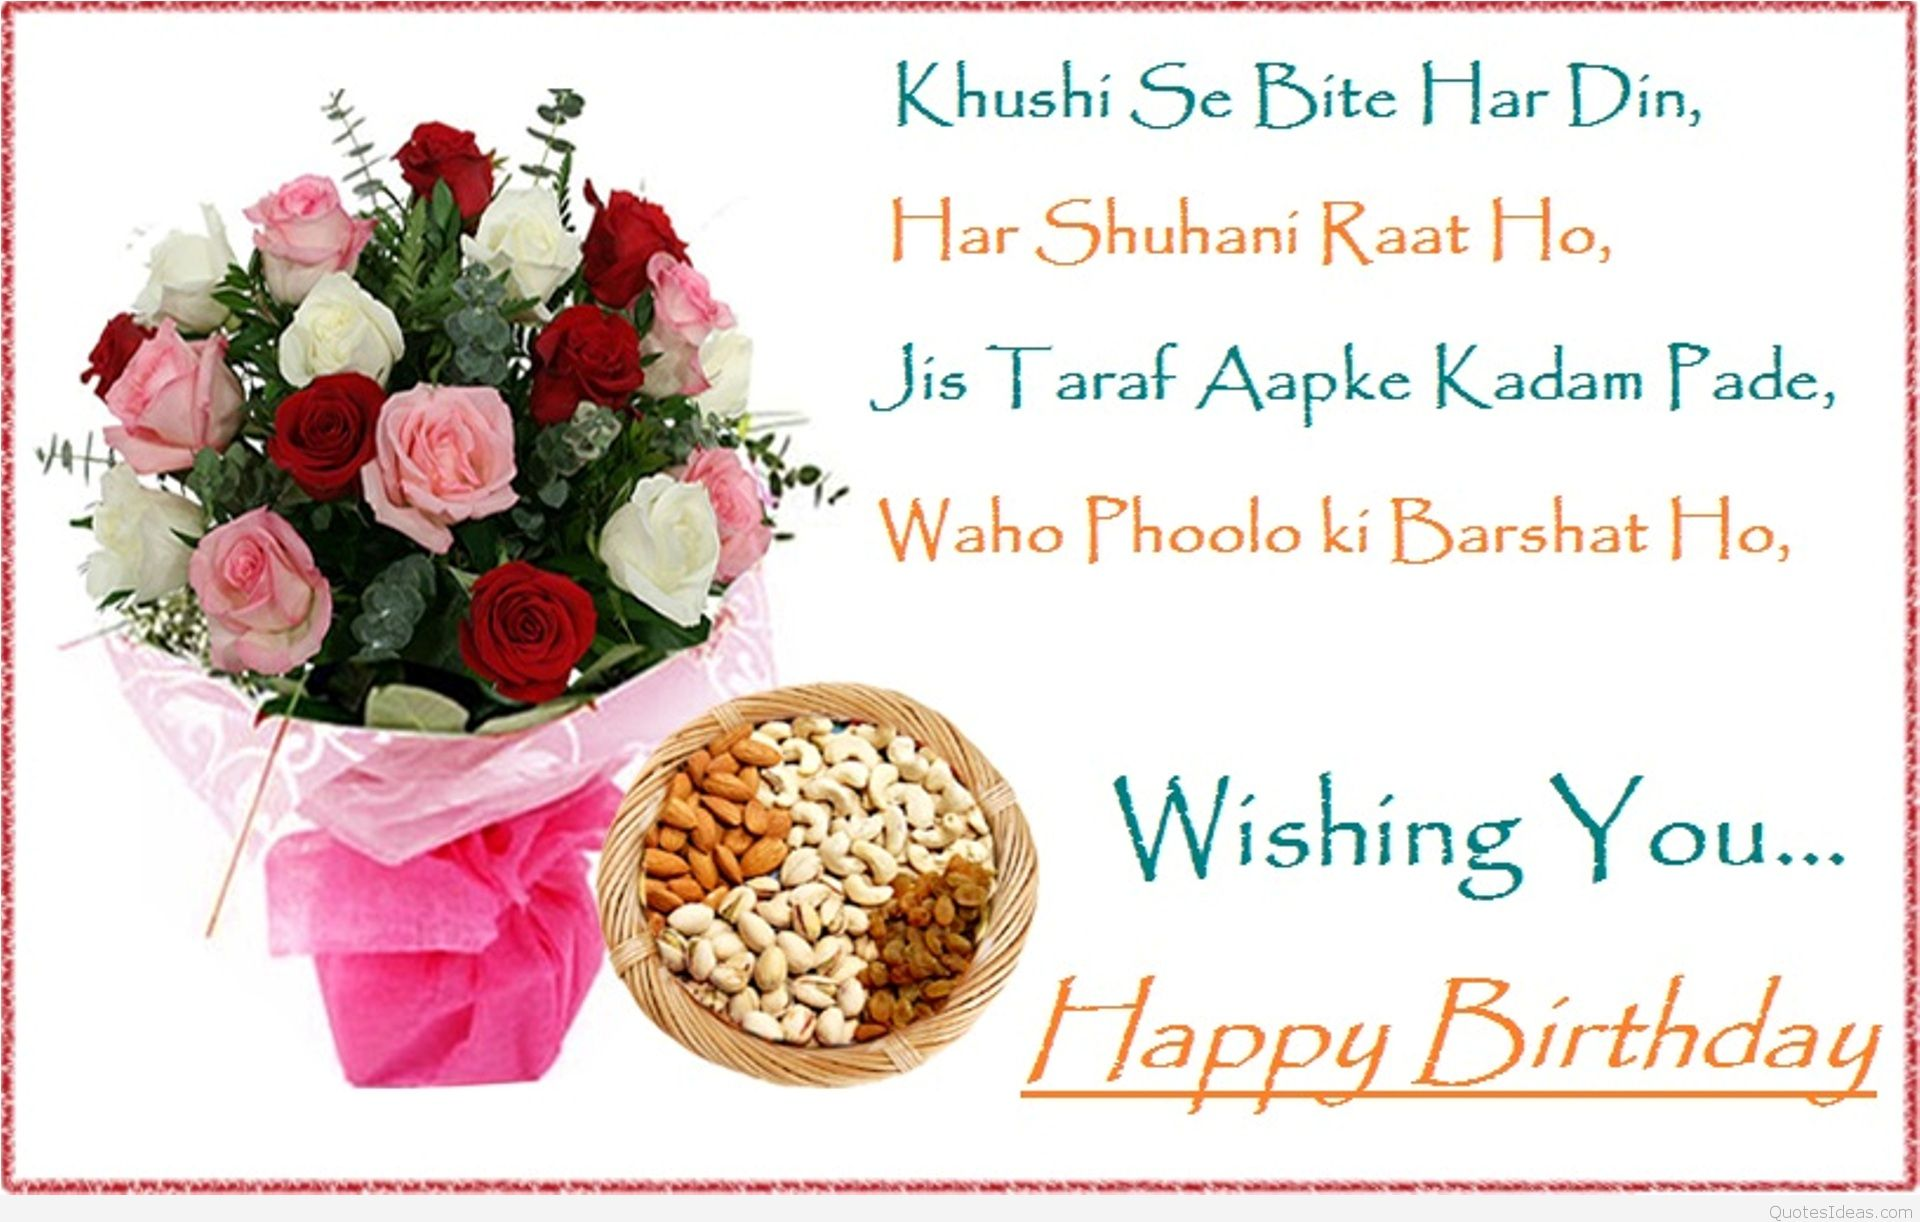 birthday wishes wallpapers with quotes ; 45042a046236c0c3a2d6a426d3bffd9d